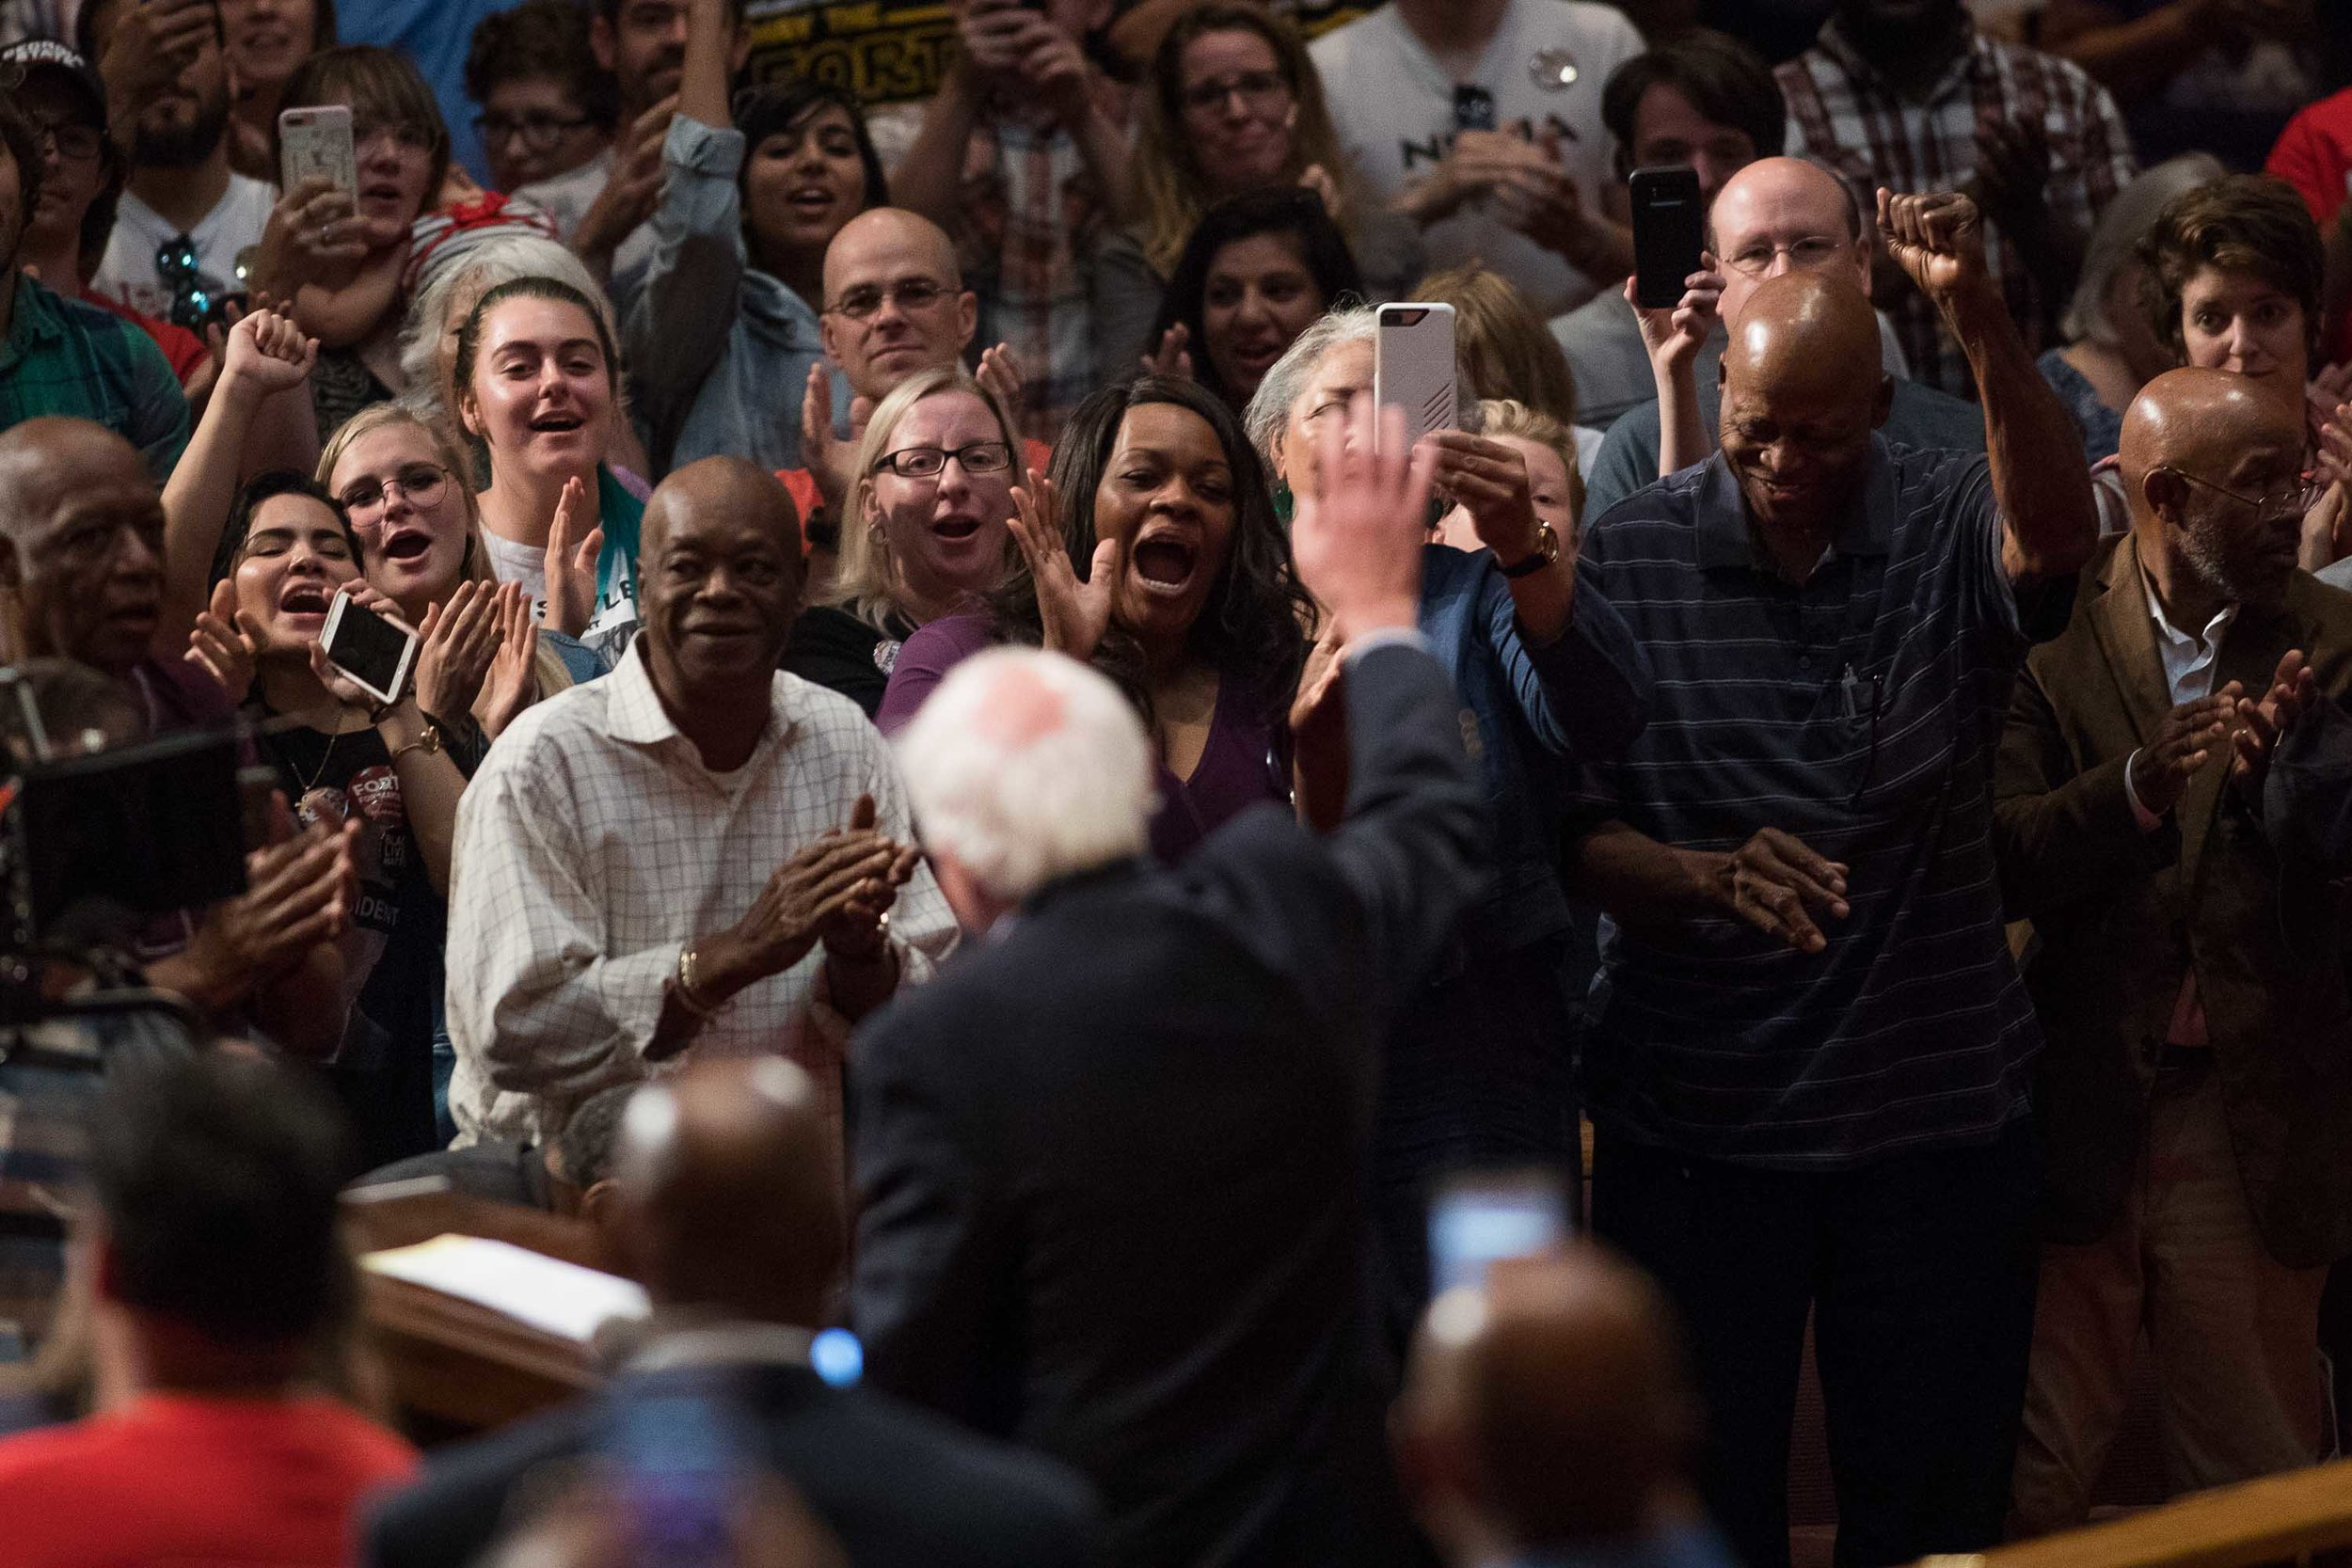 Supporters react to U.S. Sen. Bernie Sanders during a campaign rally for Atlanta mayoral candidate Vincent Fort in Atlanta. Branden Camp for AJC